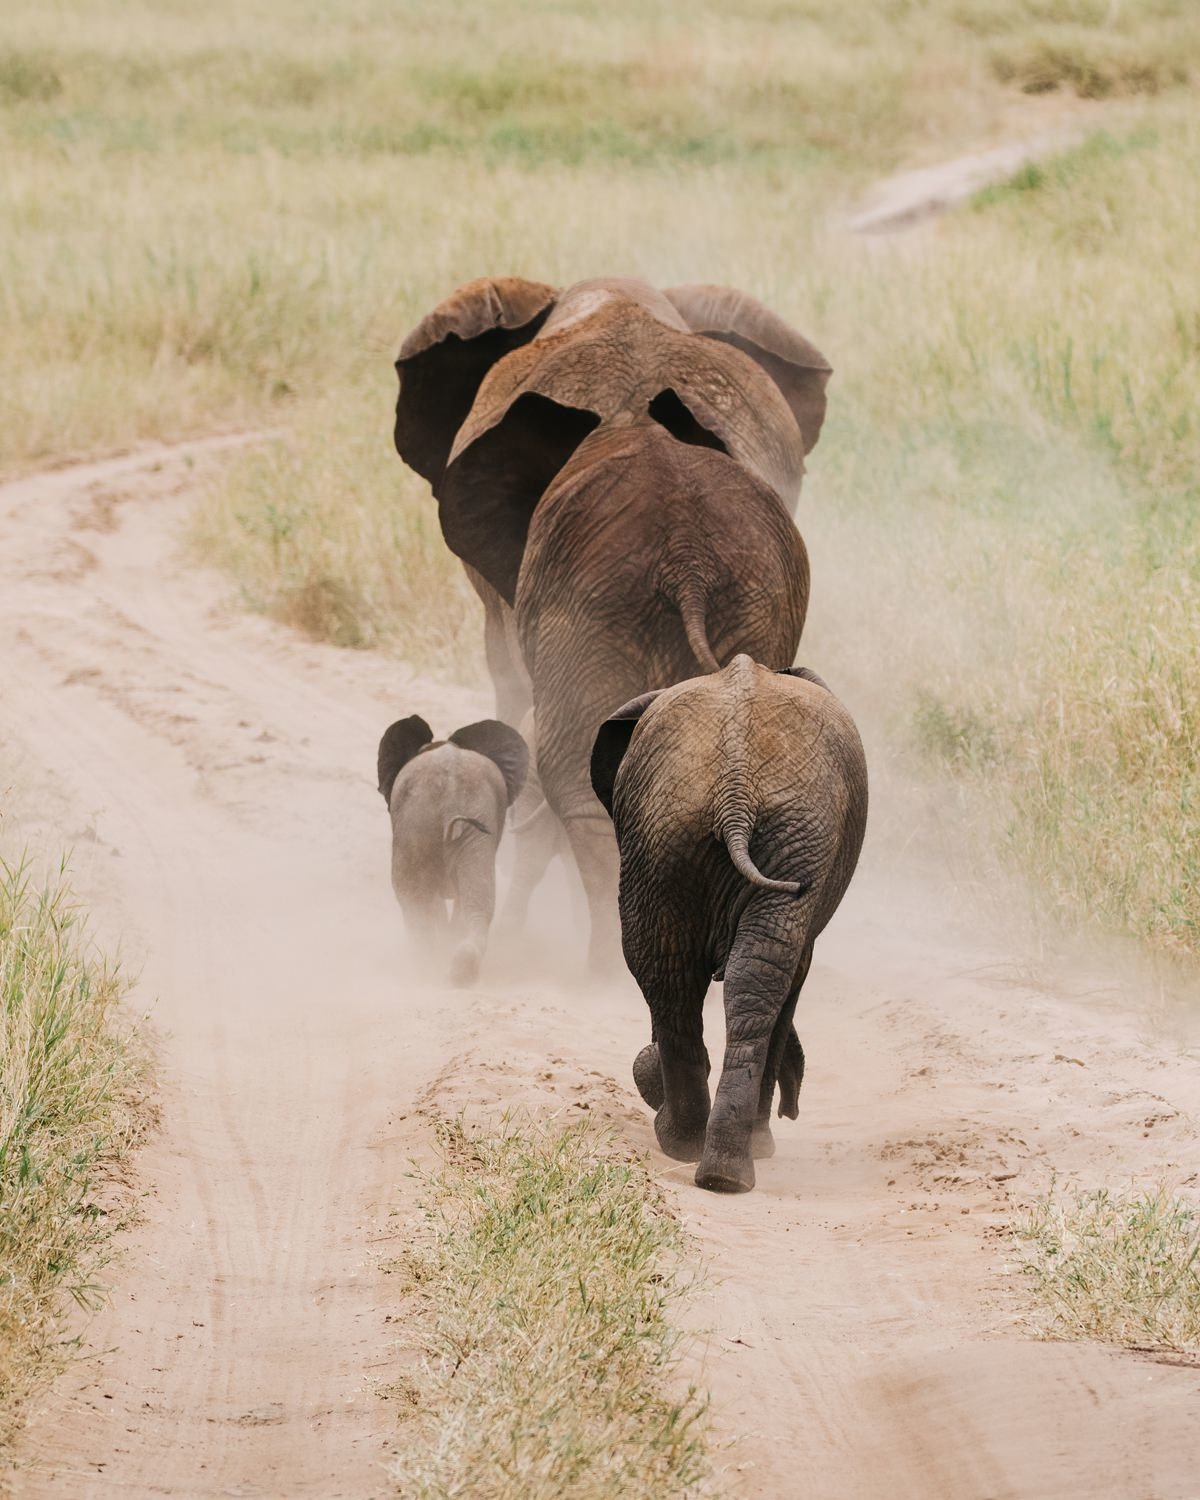 cameron-zegers-travel-photographer-tanzania-national-geographic-expeditions-elephant